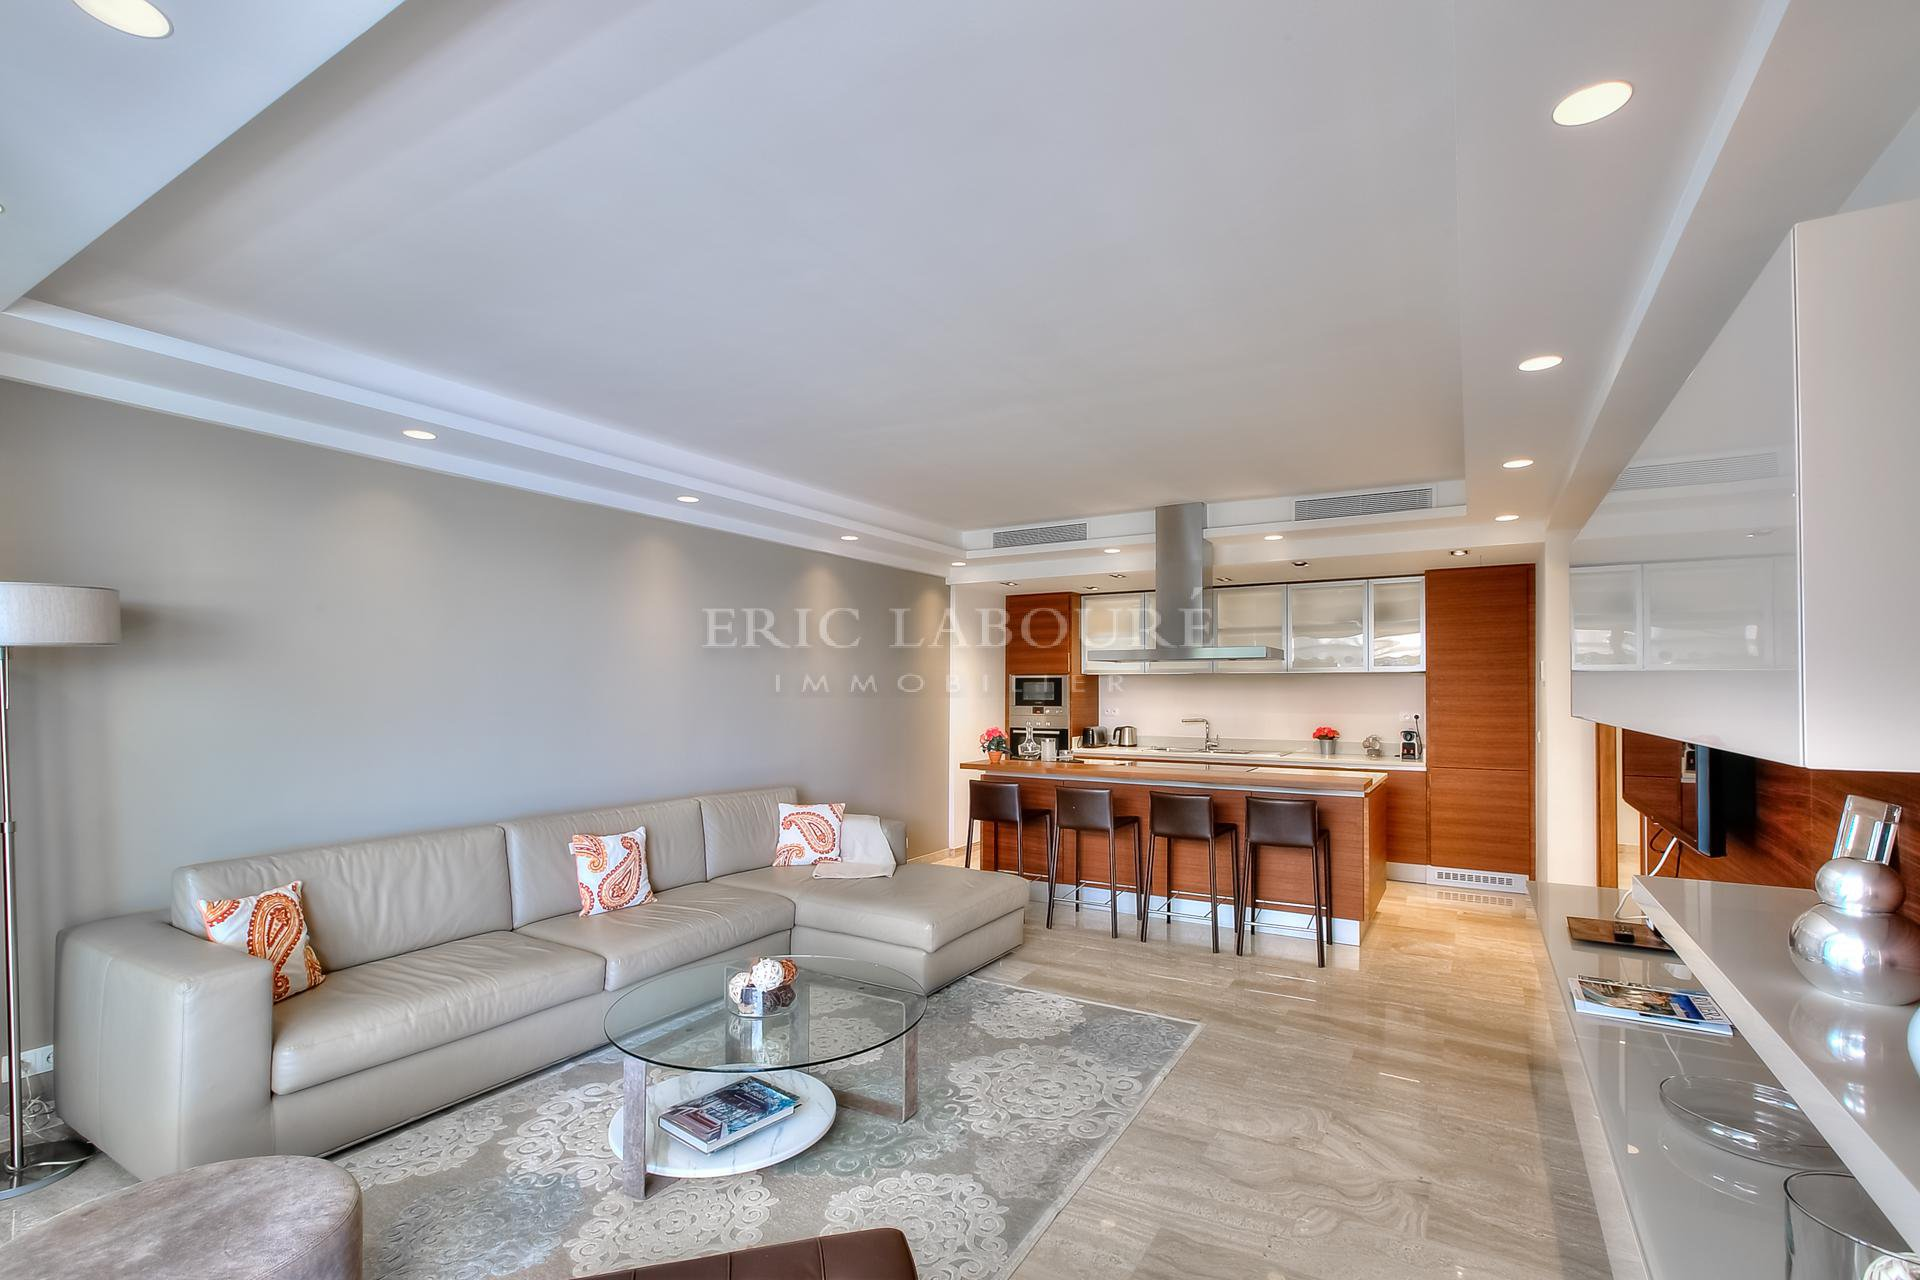 Living-room and fully equiped open kitchen